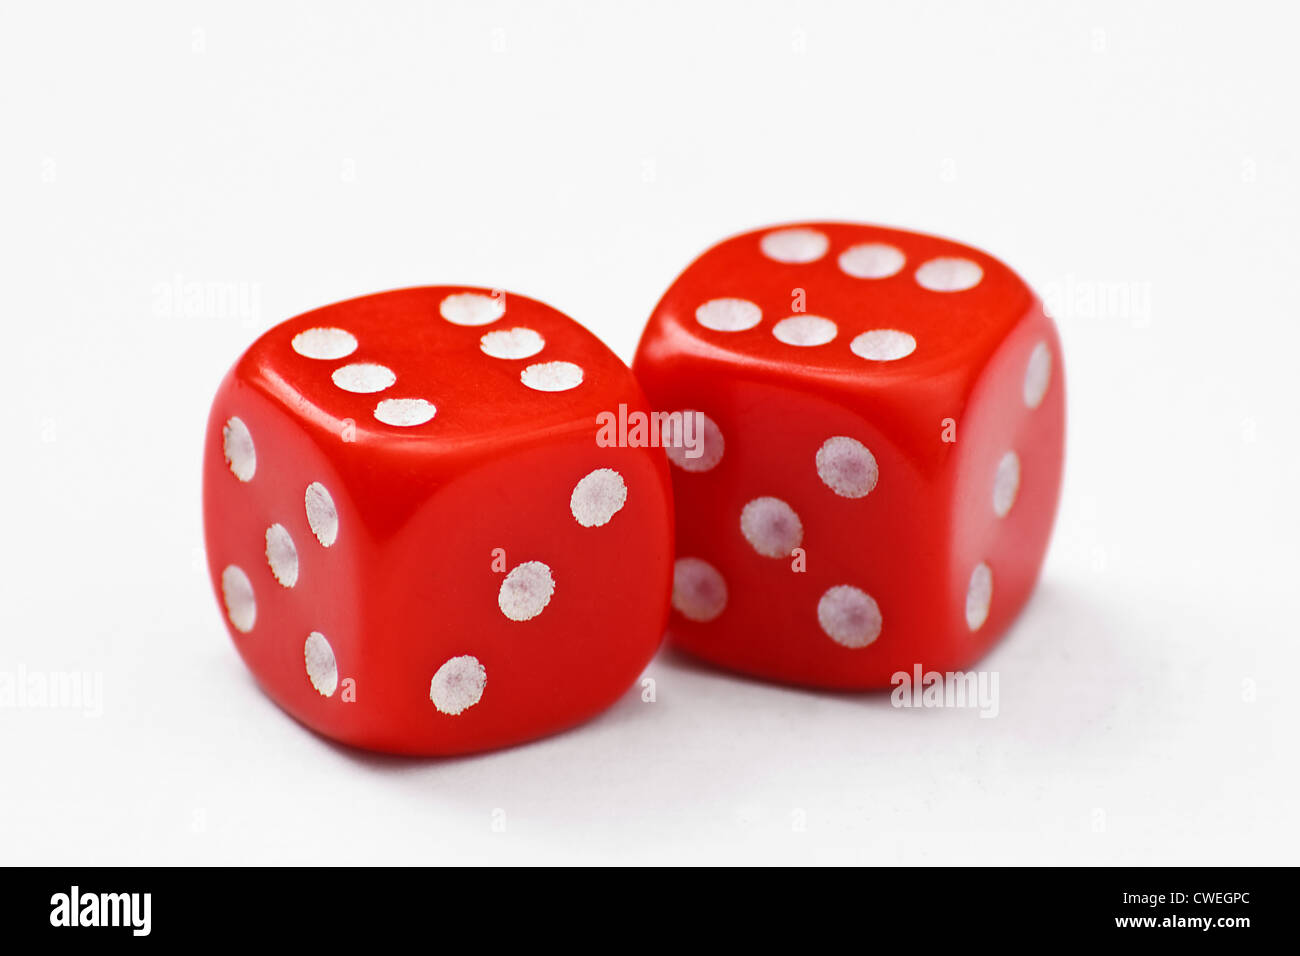 Pair of red dice thrown to a double six, isolated on a white background - Stock Image